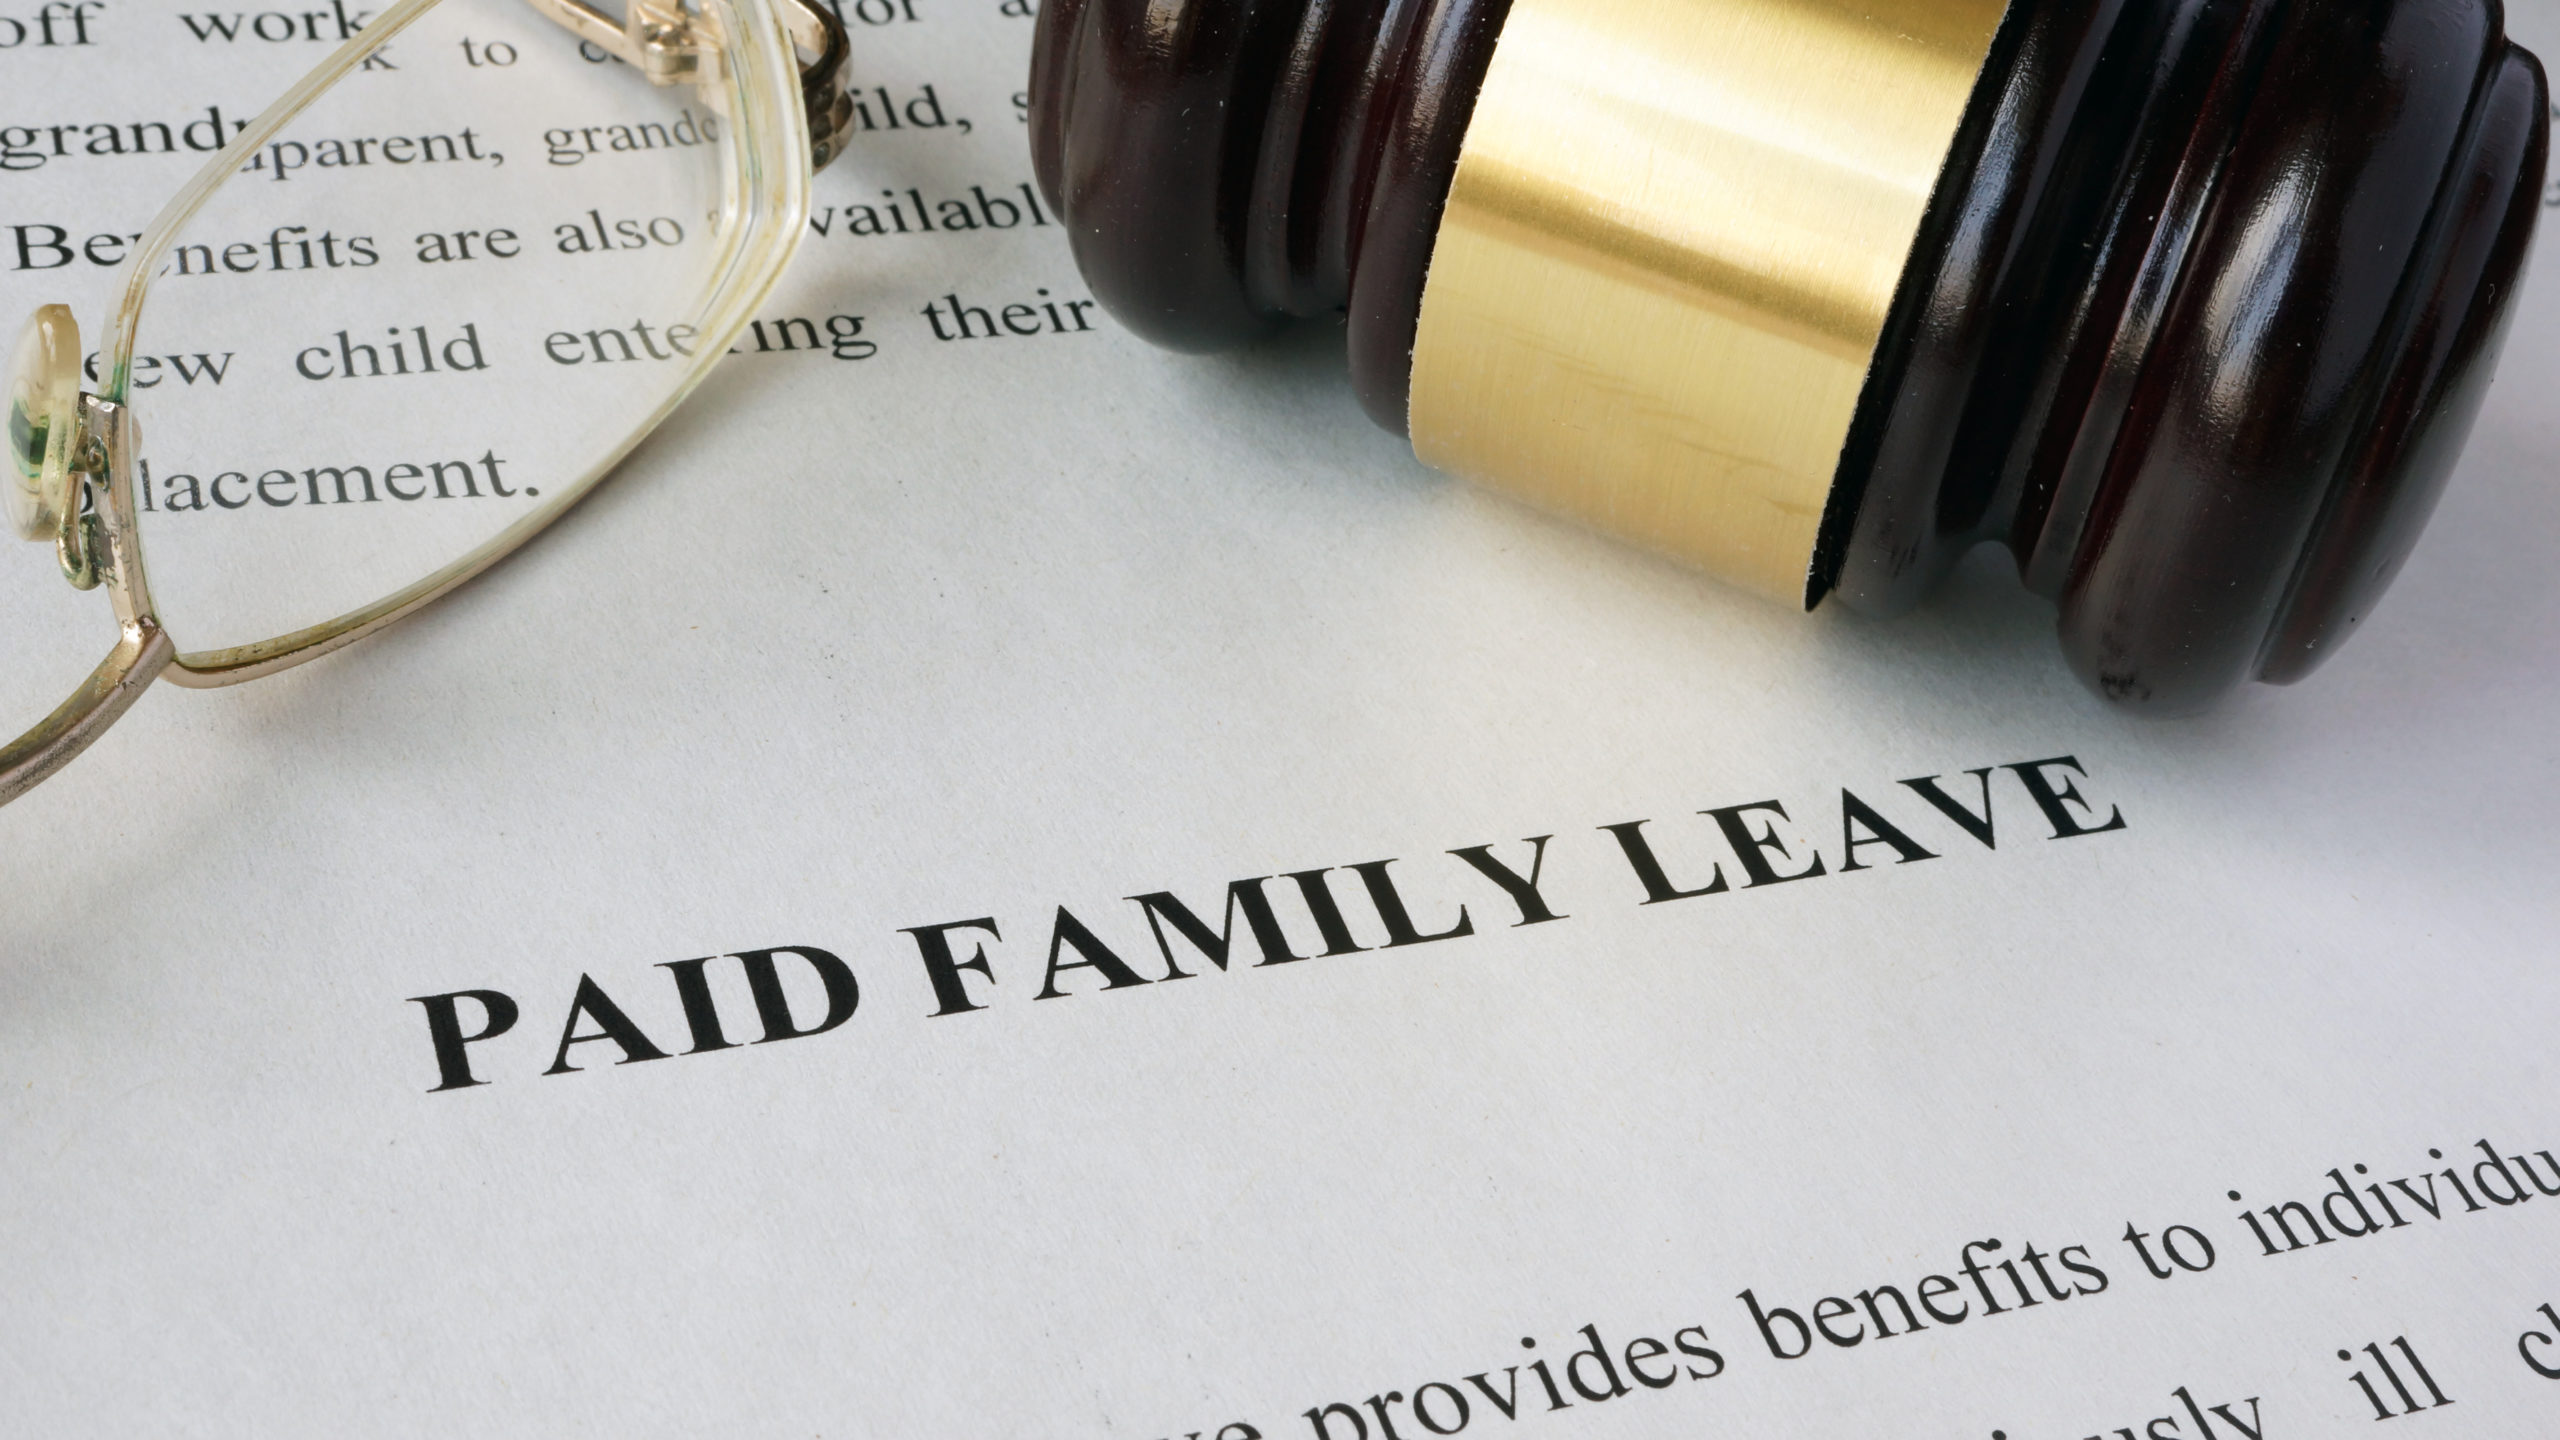 Stock image depicting paid family leave